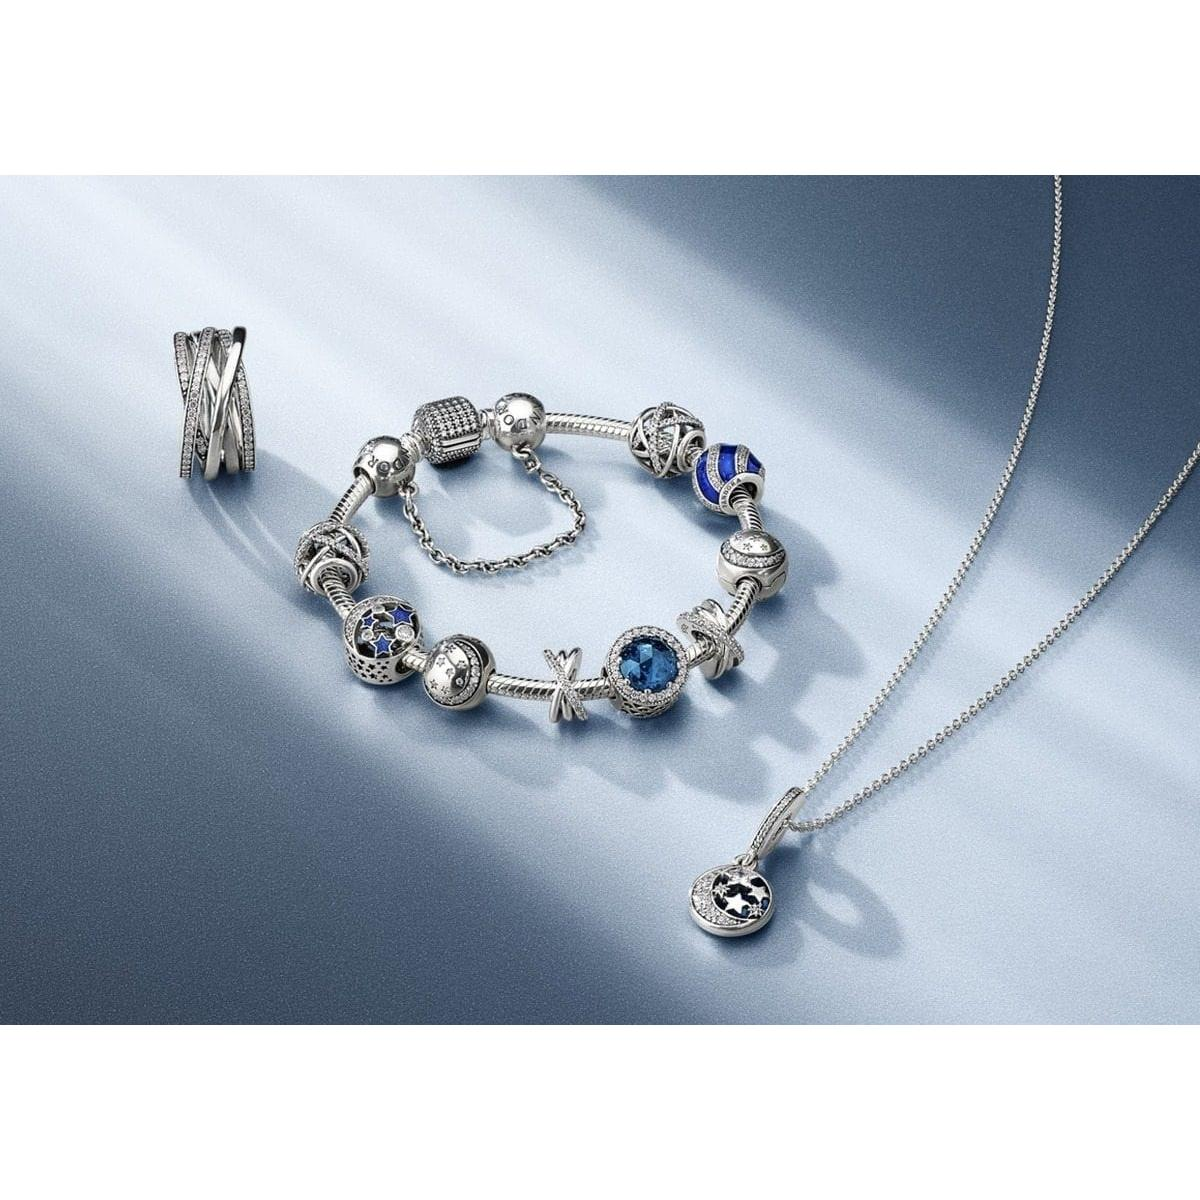 The PANDORA Christmas collection has landed